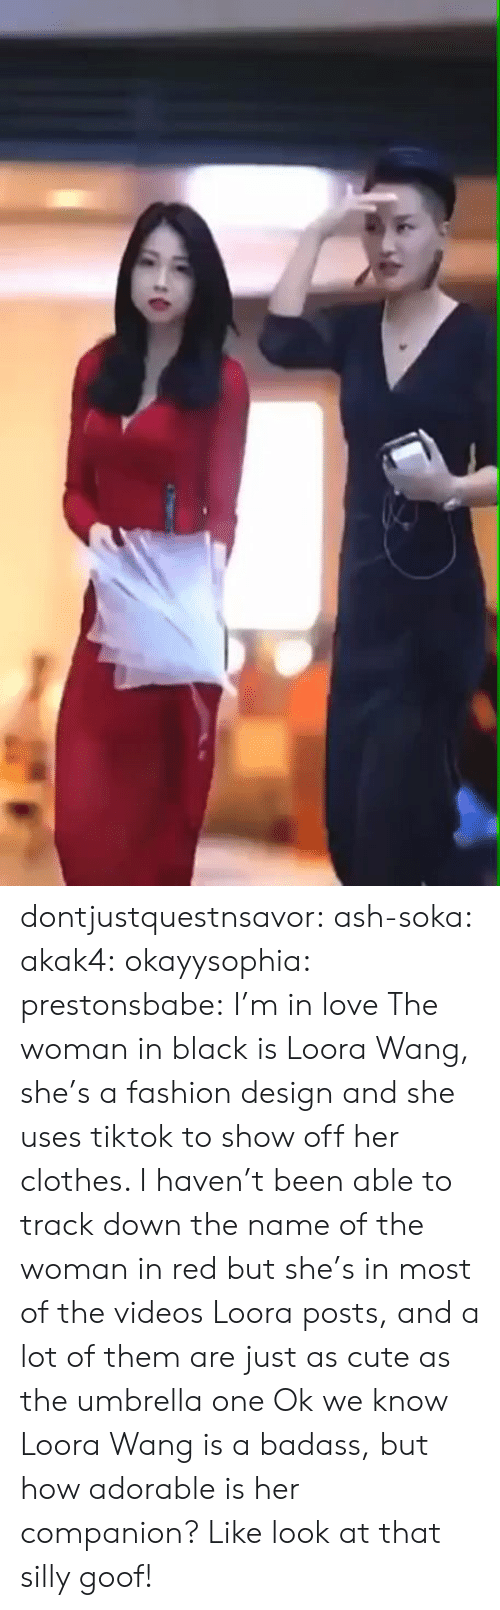 A Badass: dontjustquestnsavor:  ash-soka:   akak4:   okayysophia:   prestonsbabe:     I'm in love    The woman in black is Loora Wang, she's a fashion design and she uses tiktok to show off her clothes. I haven't been able to track down the name of the woman in red but she's in most of the videos Loora posts, and a lot of them are just as cute as the umbrella one   Ok we know Loora Wang is a badass, but how adorable is her companion? Like look at that silly goof!